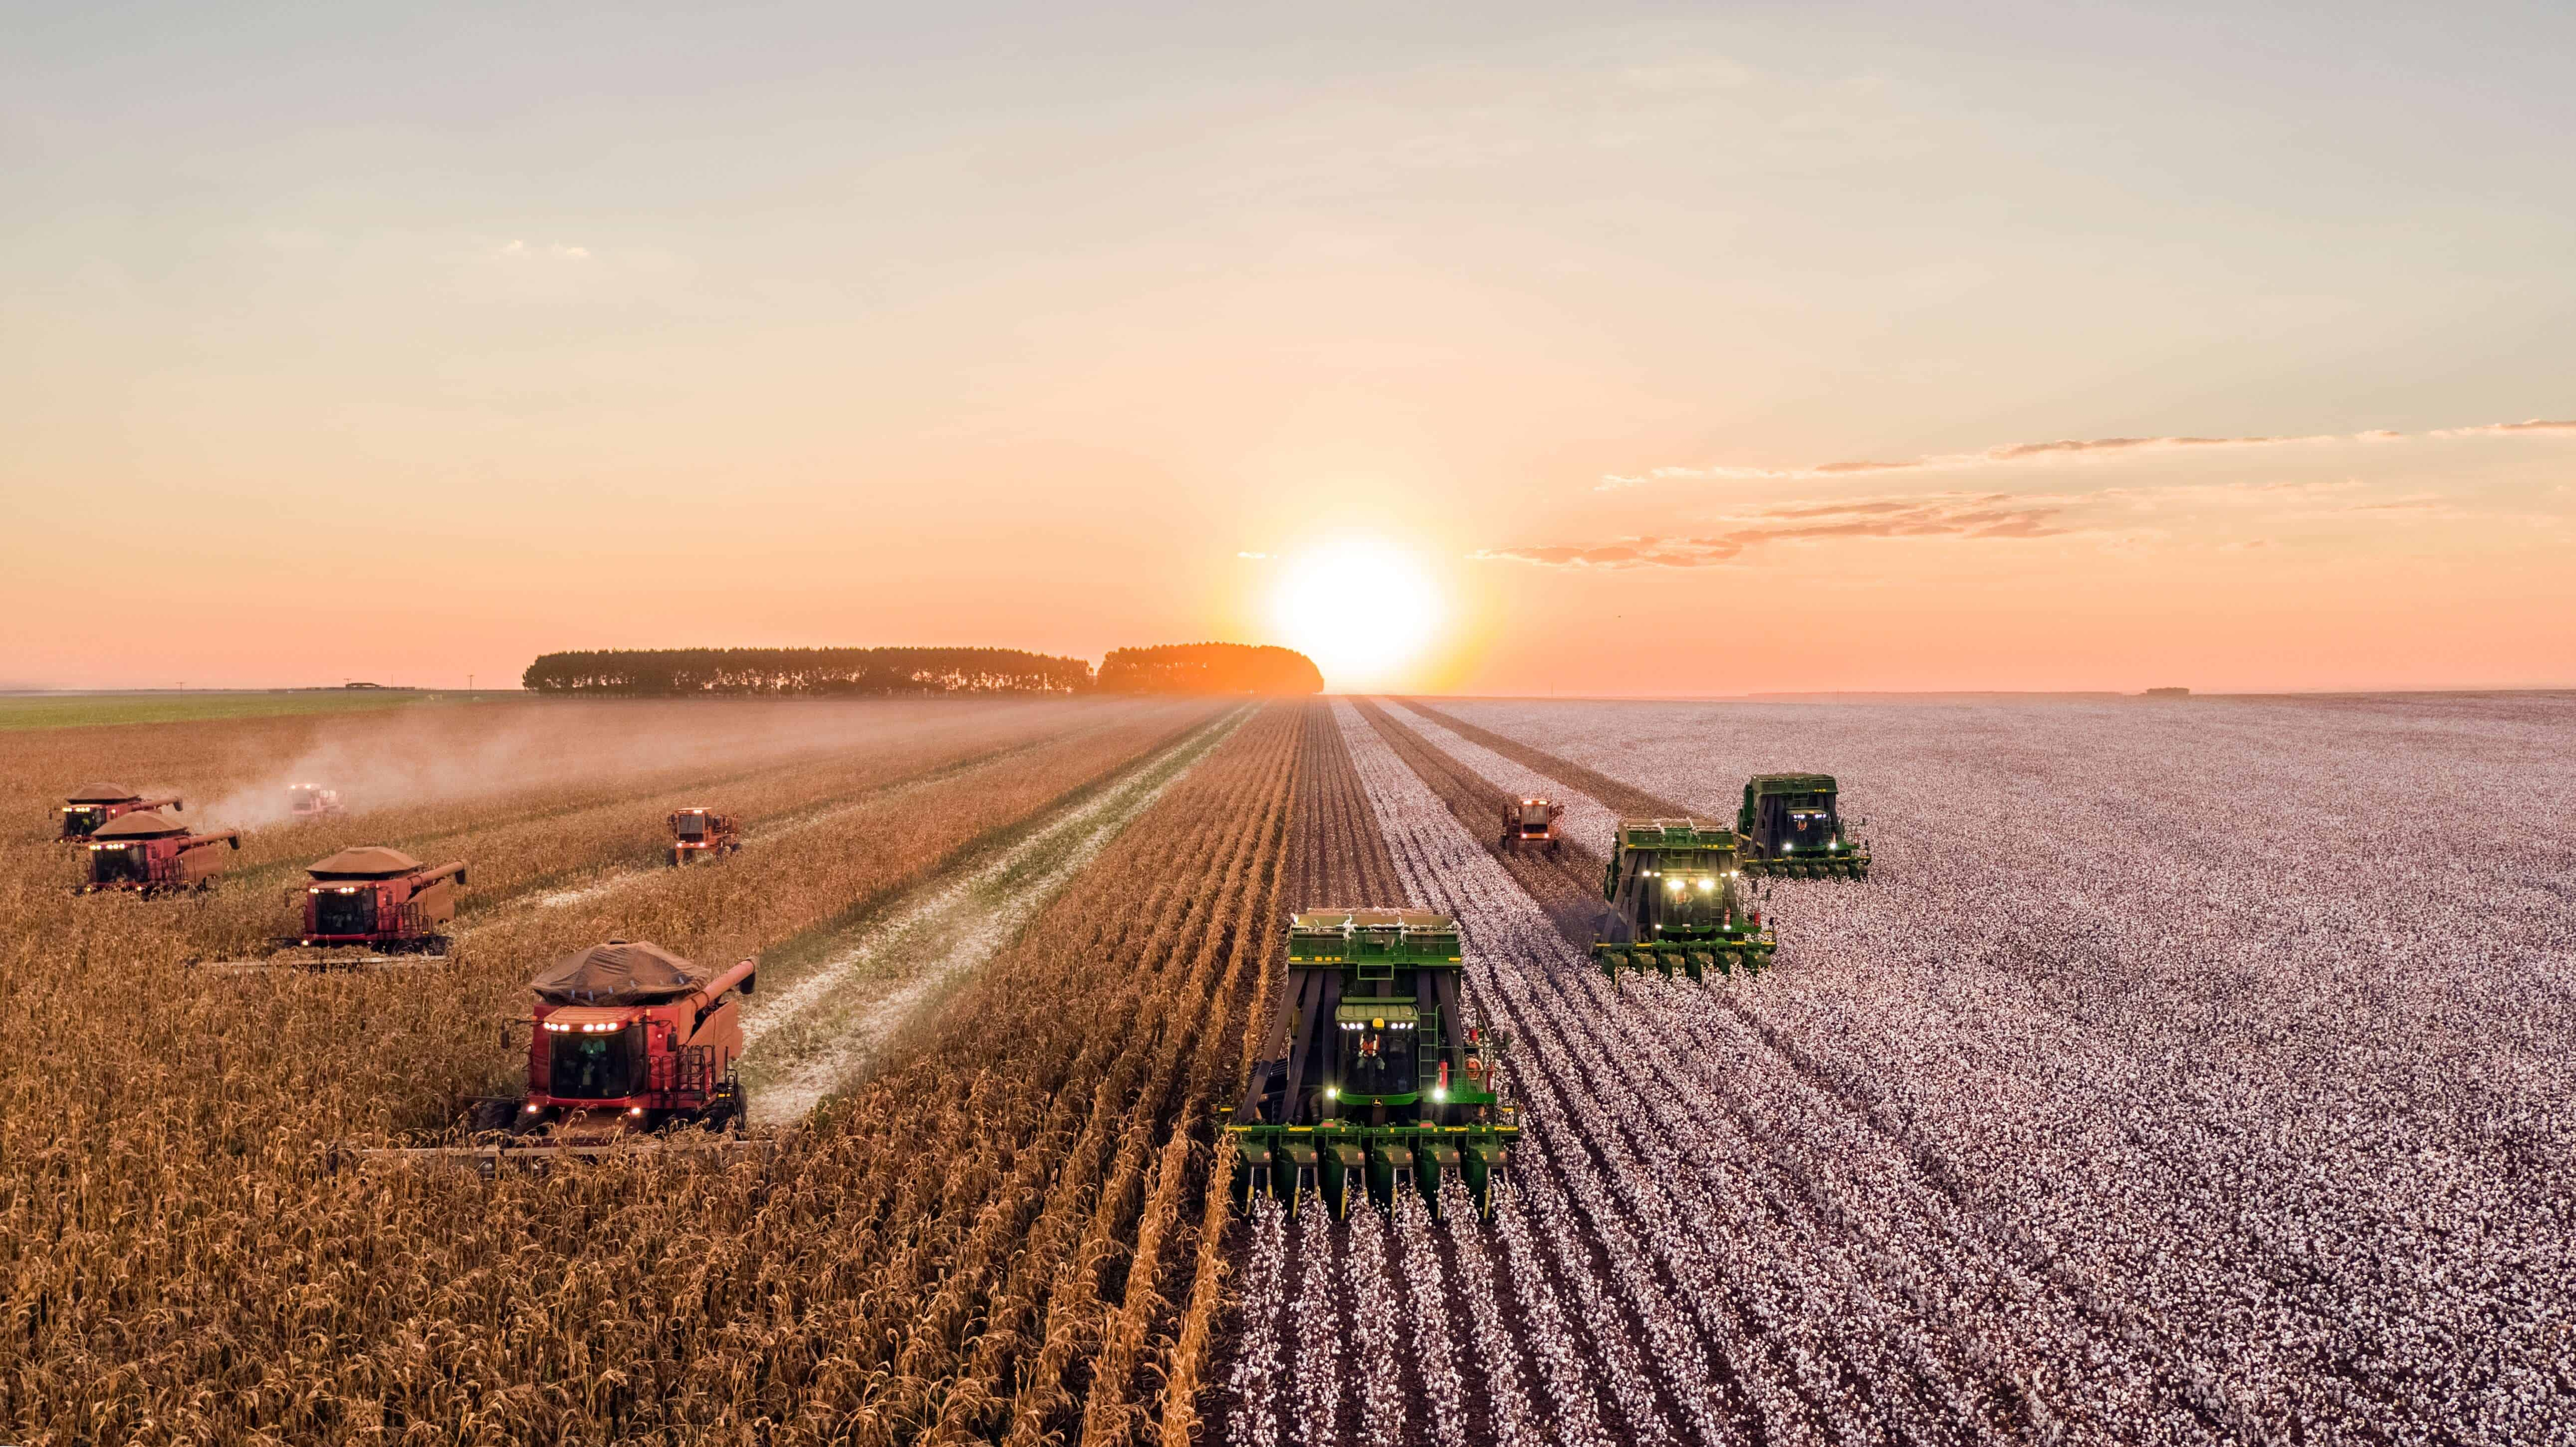 Several farm trucks on a crop field while the sunsets in the background.